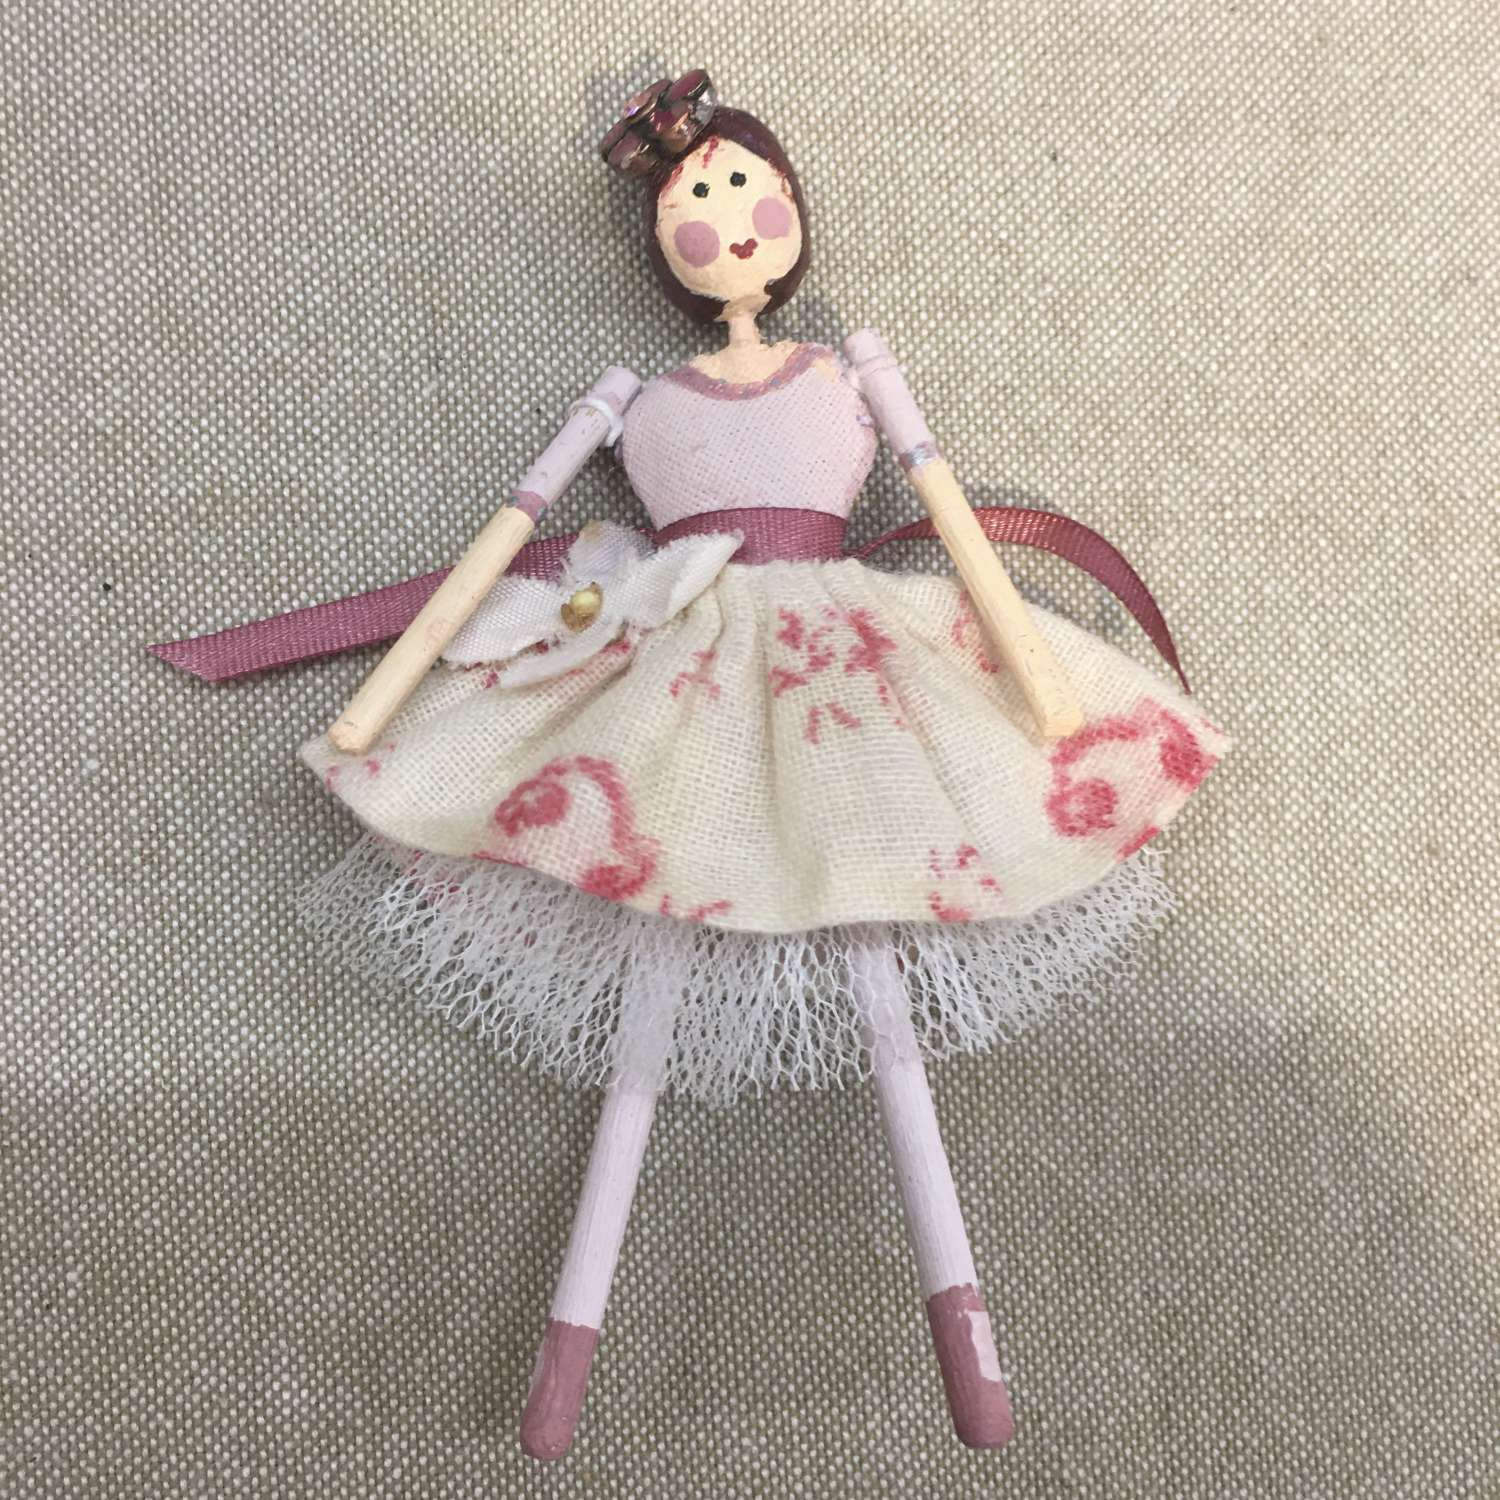 Tiny paper clay doll with vintage fabric dress